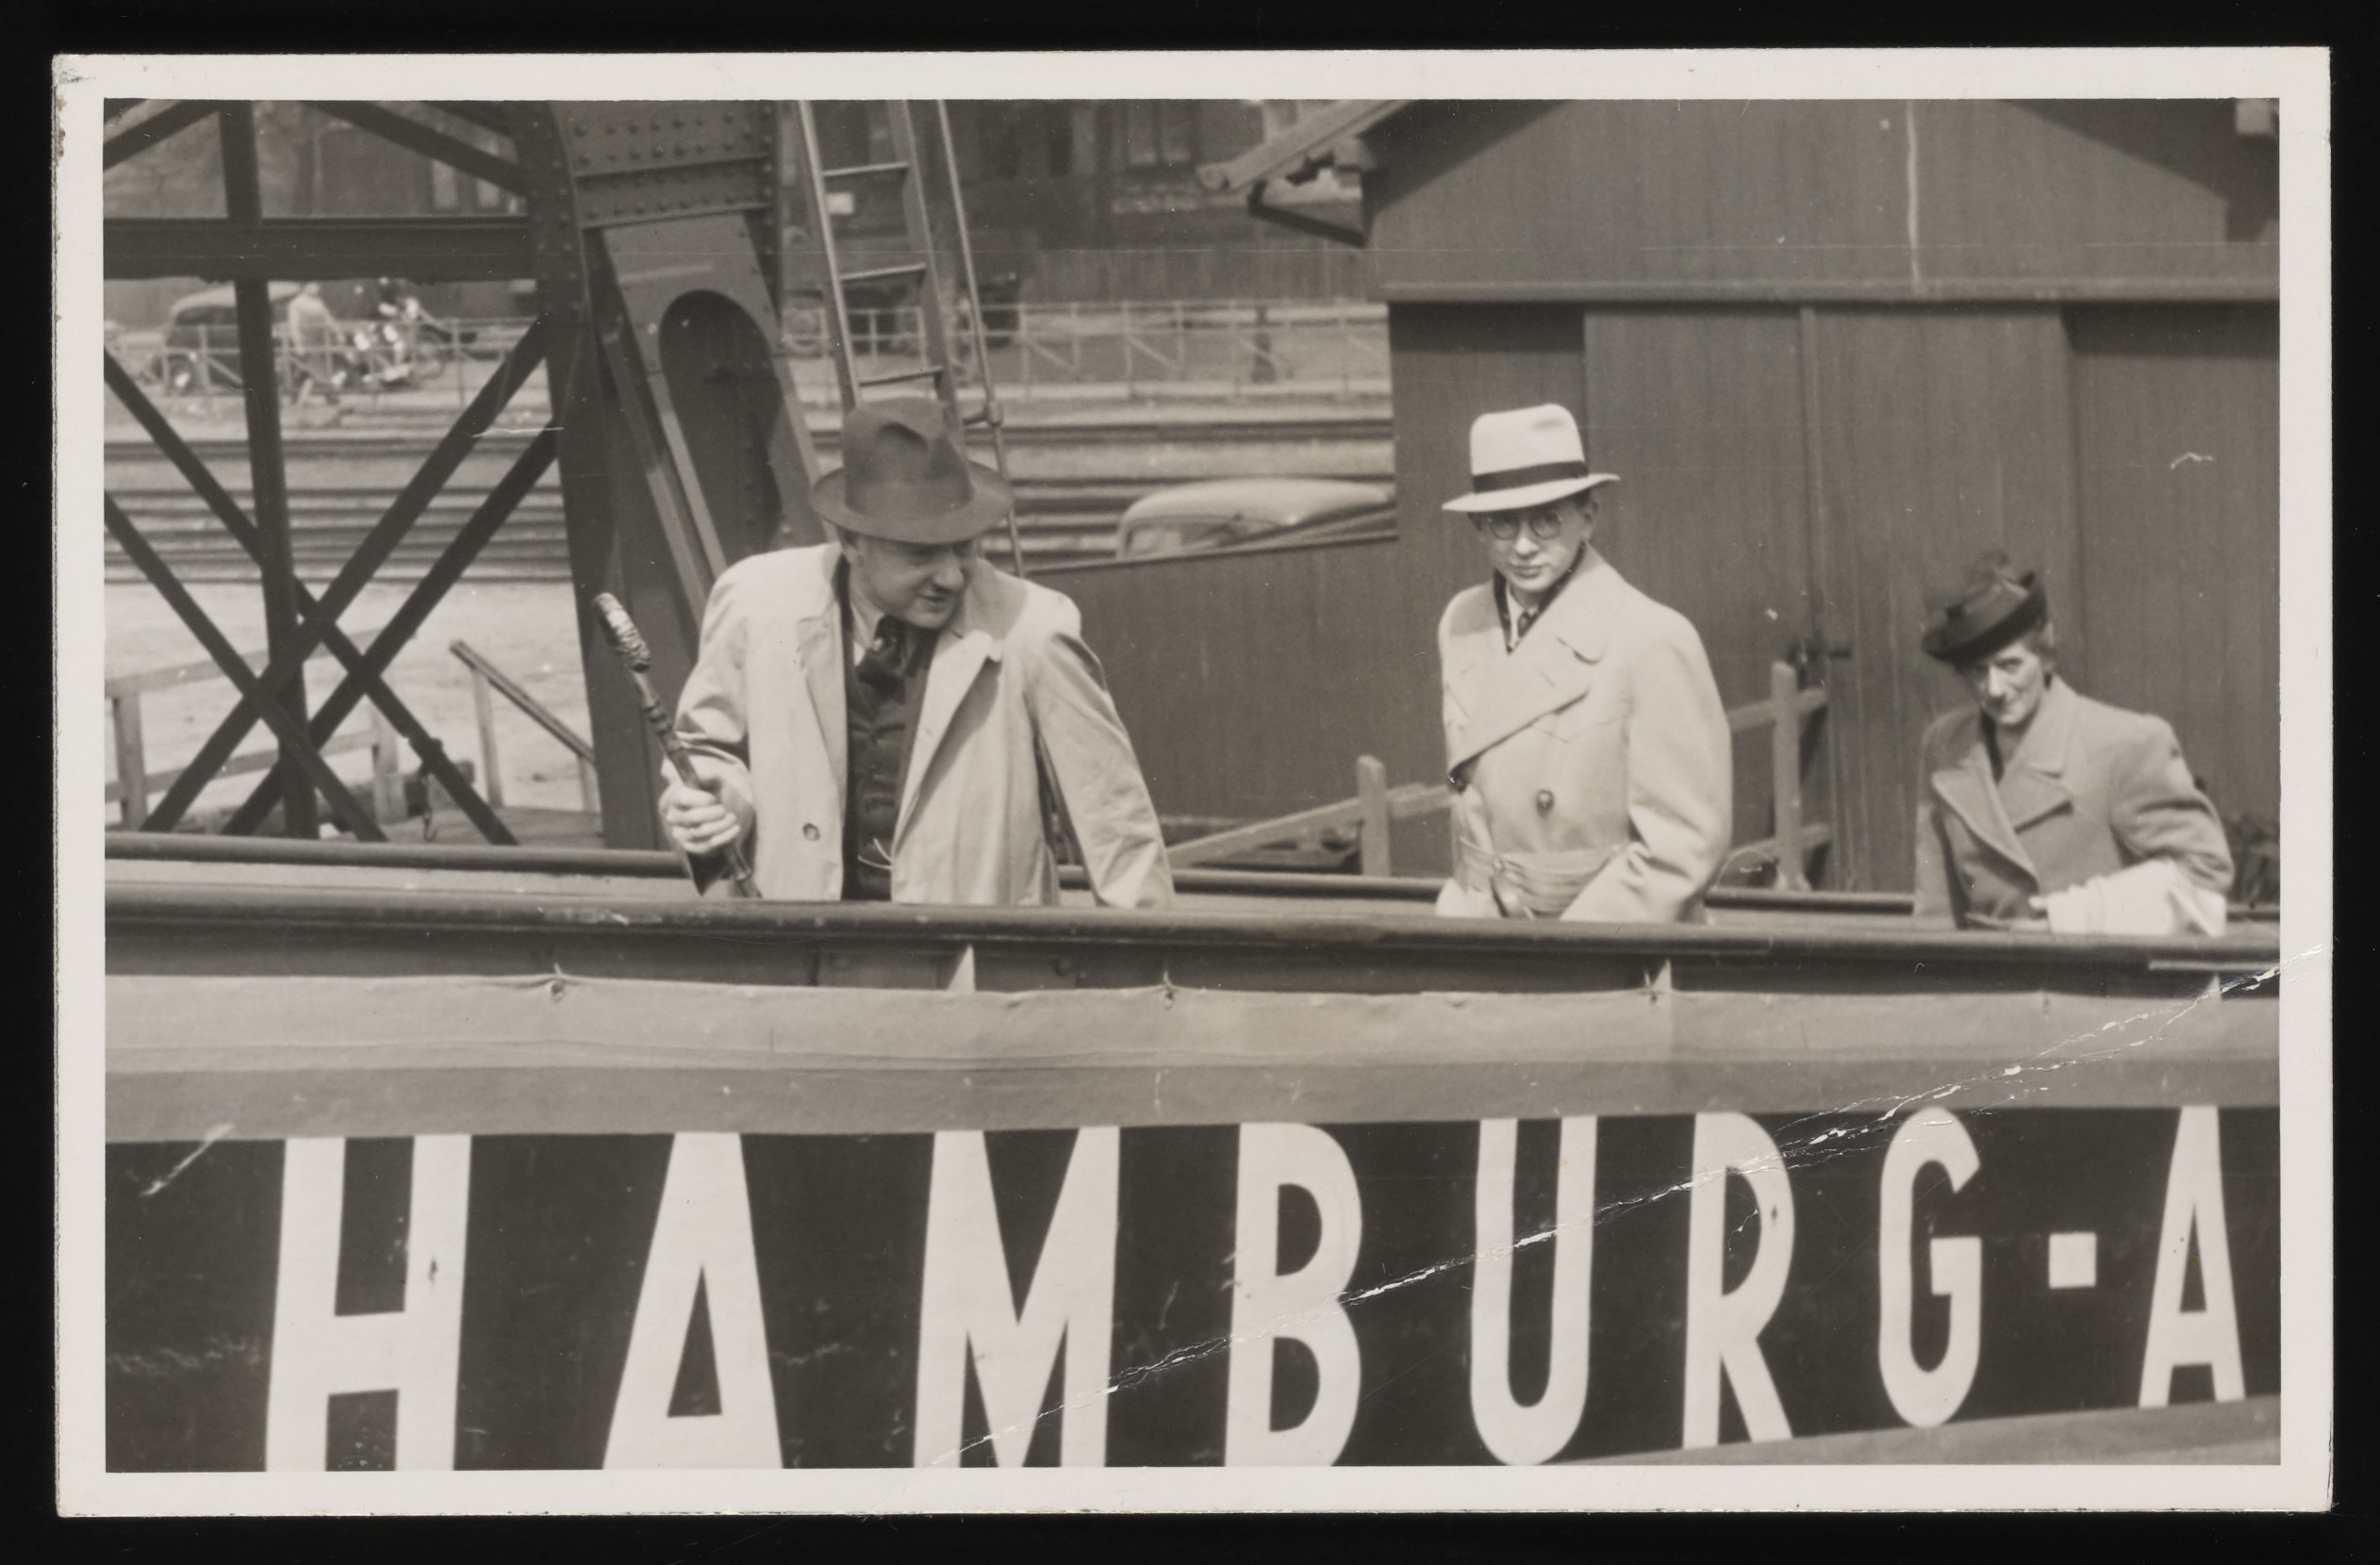 Members of the Dingfelder family board the MS St. Louis in Hamburg harbor.  Pictured from left to right are: Leopold, Rudi, and Johanna Dingfelder.